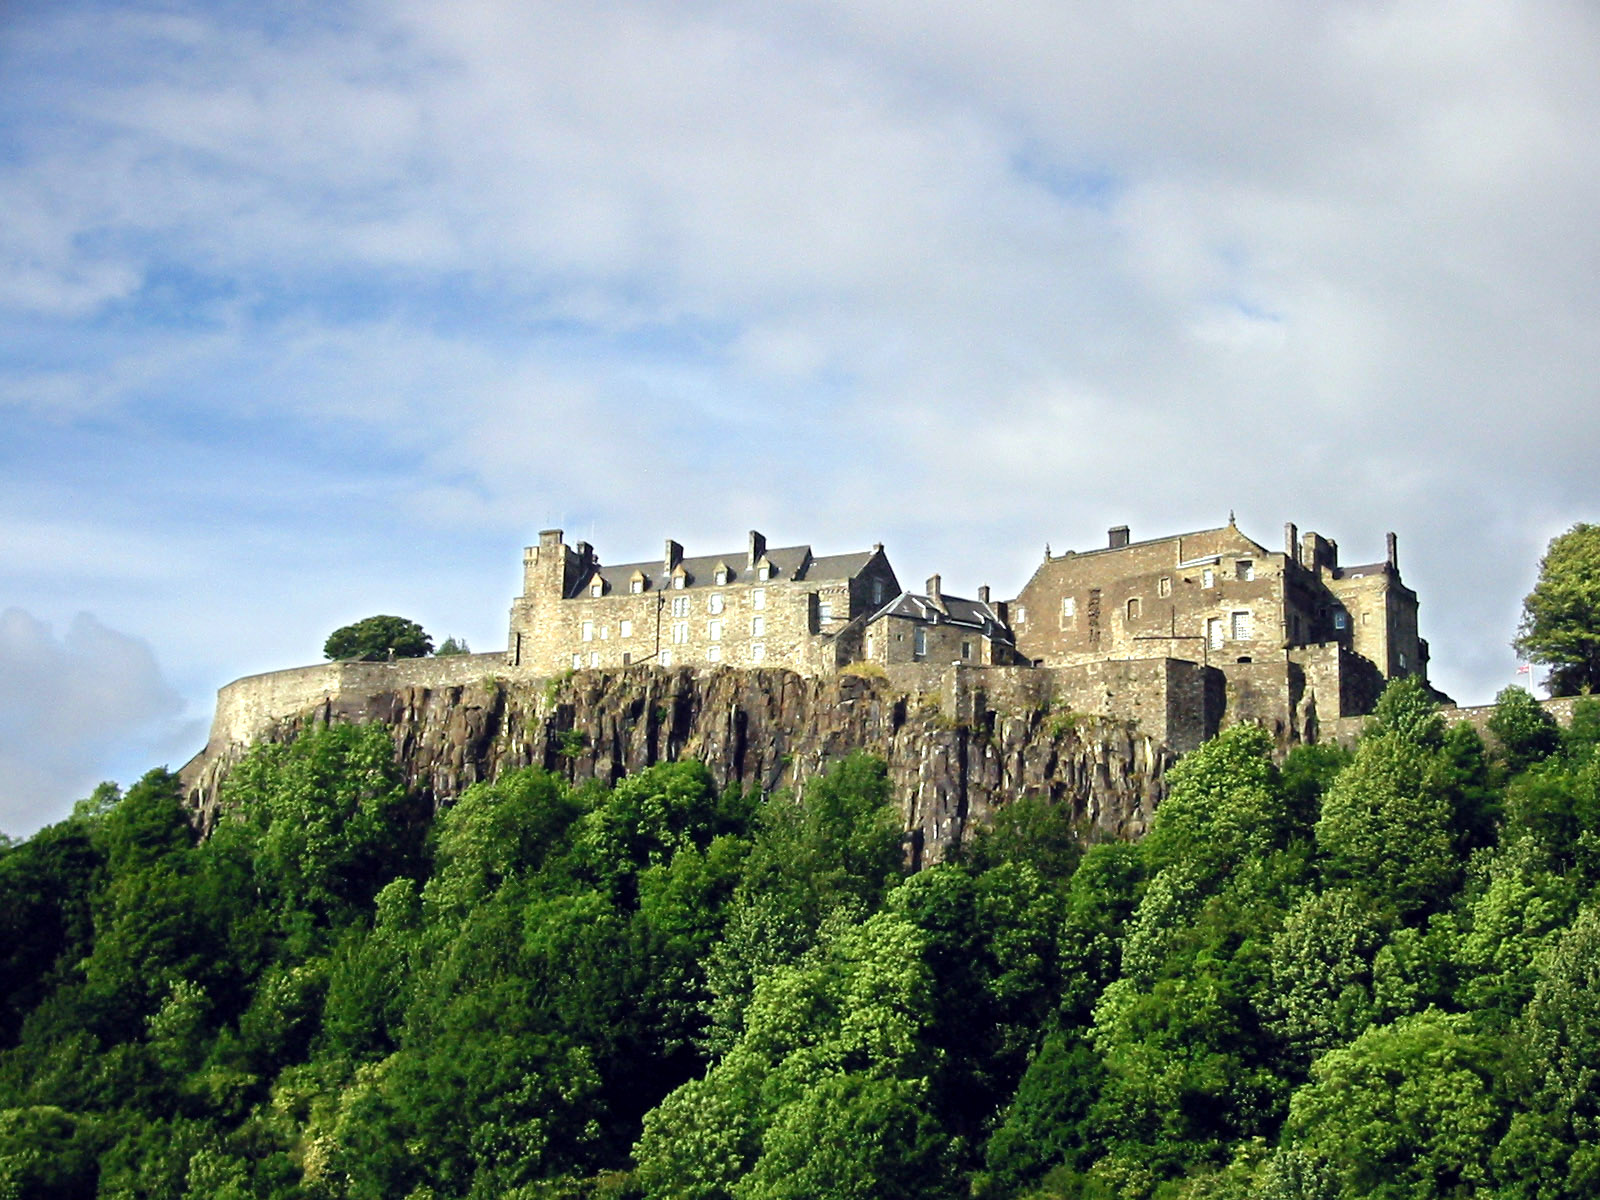 https://upload.wikimedia.org/wikipedia/commons/8/86/Stirlingcastle.jpg